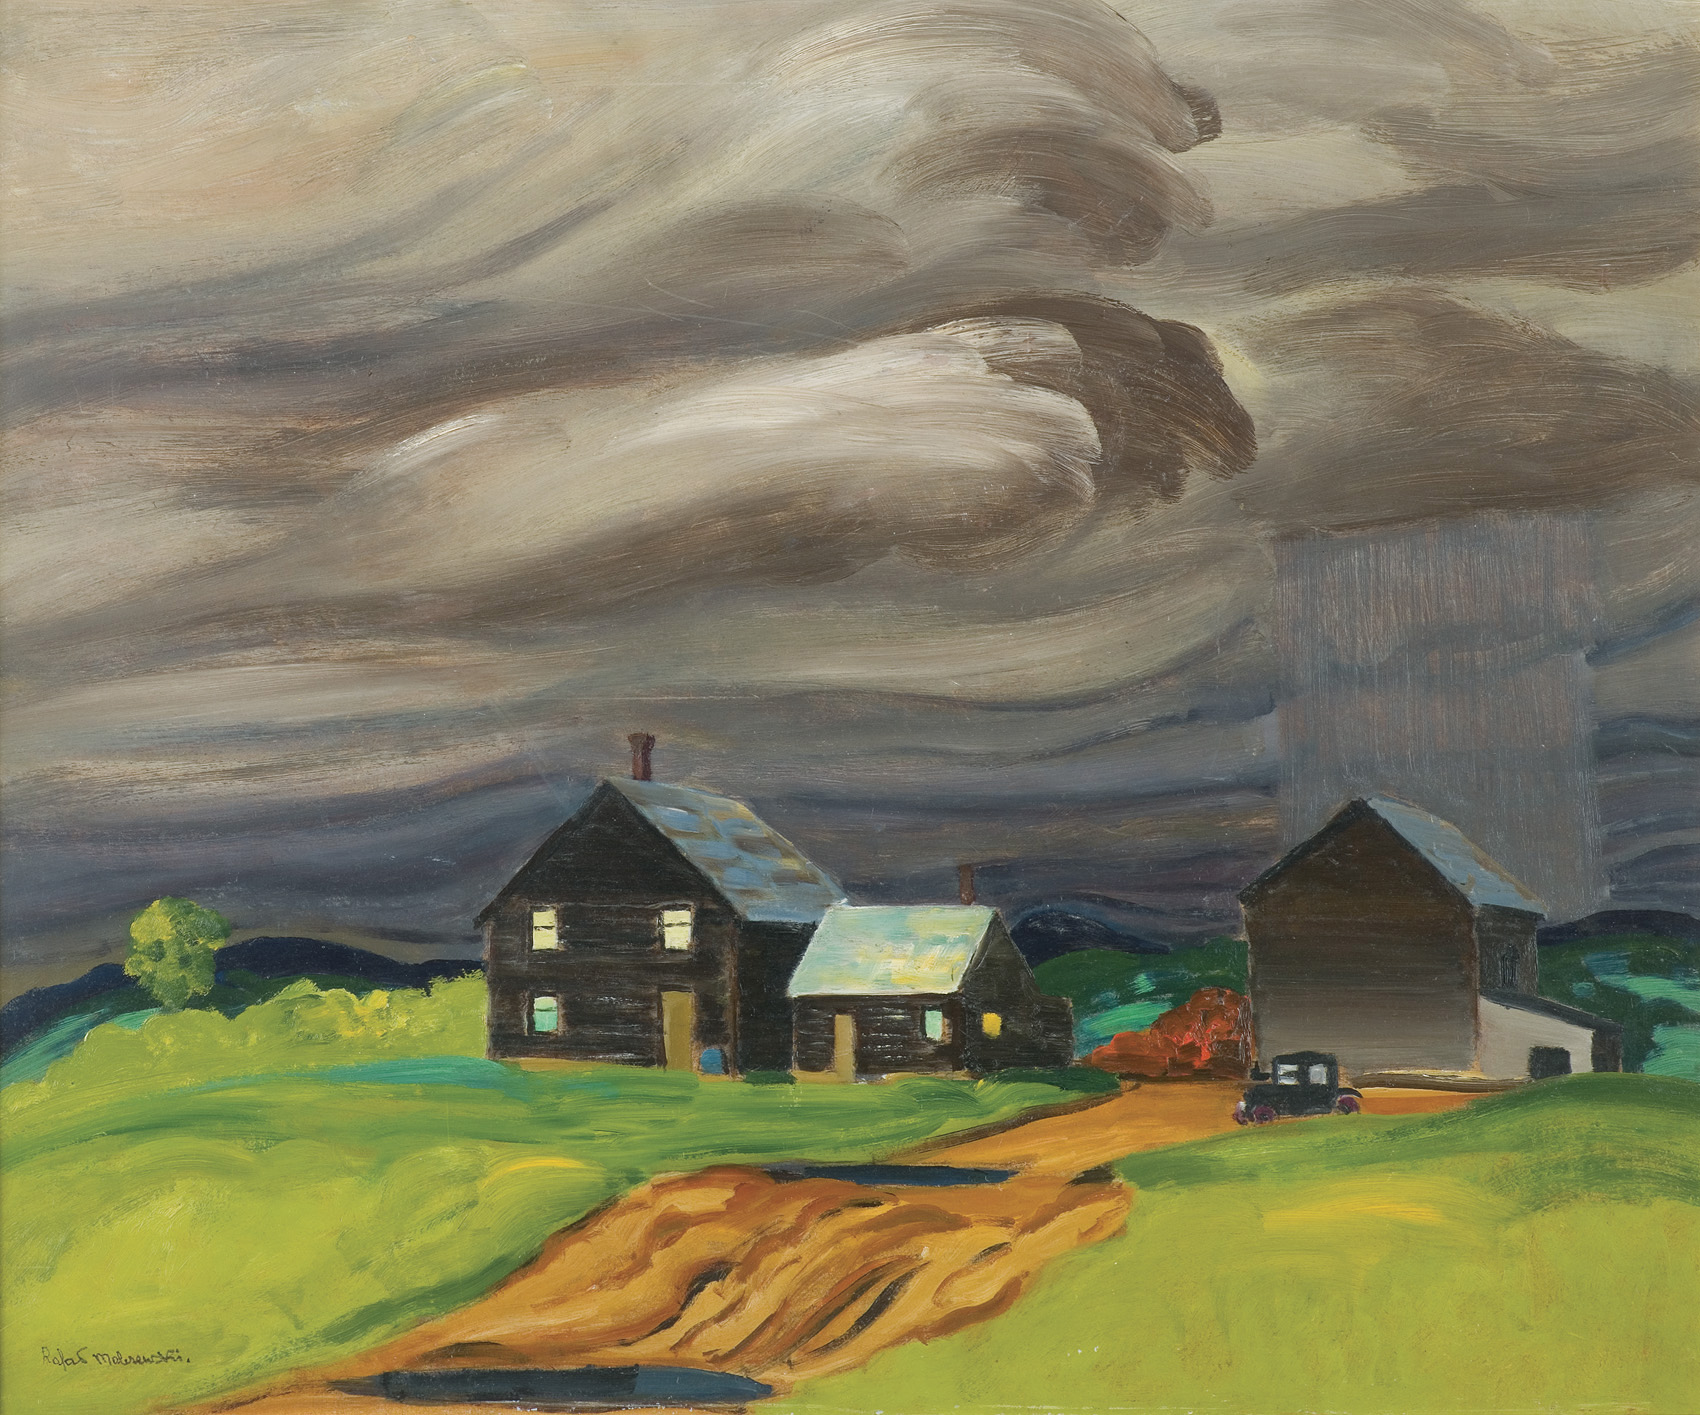 THE STORM, 1949